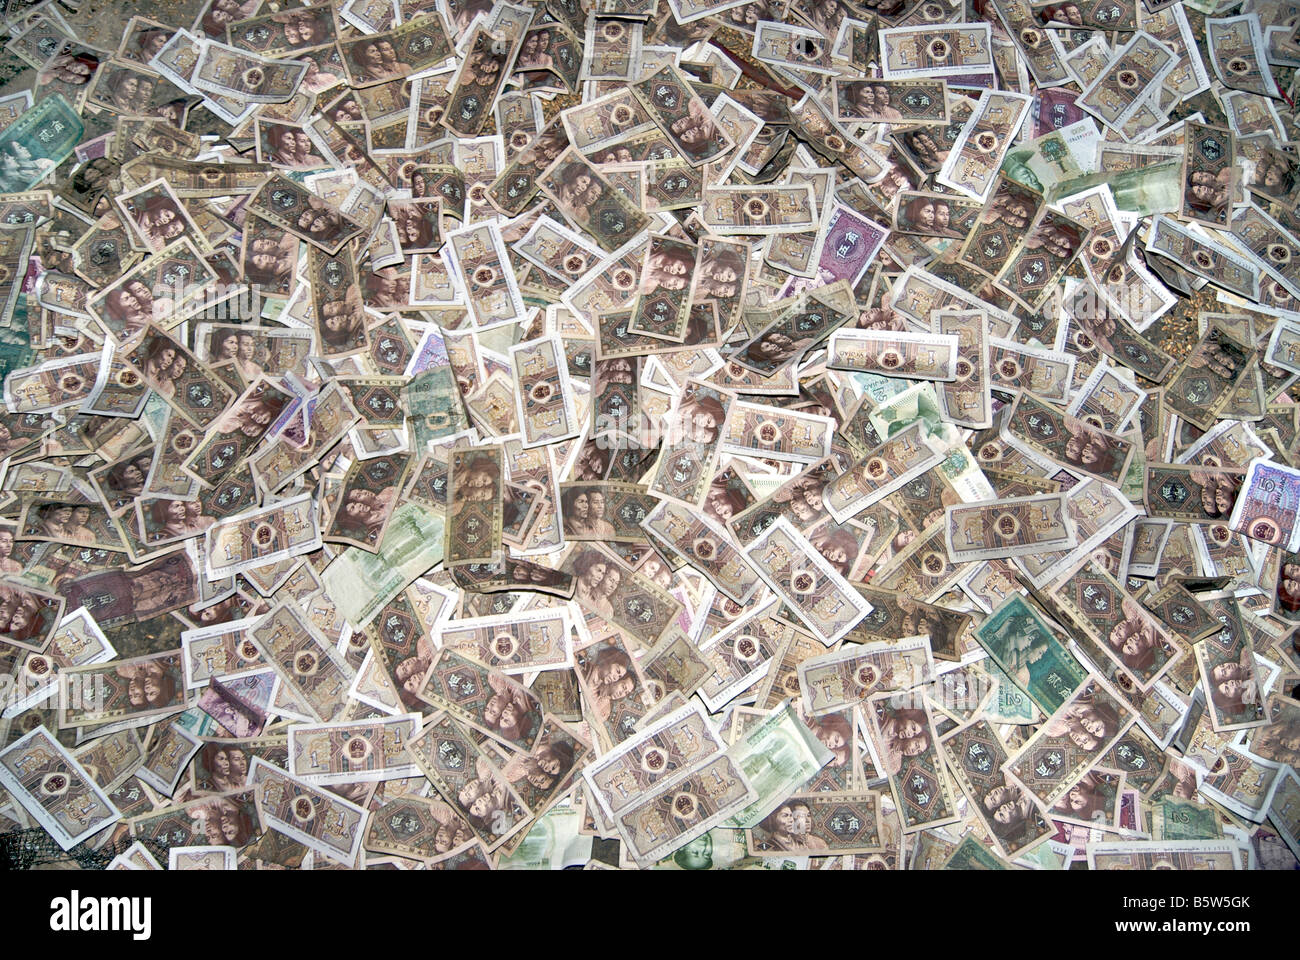 Chinese banknotes donated to the monastery. Drepung, Lhasa, Tibet - Stock Image